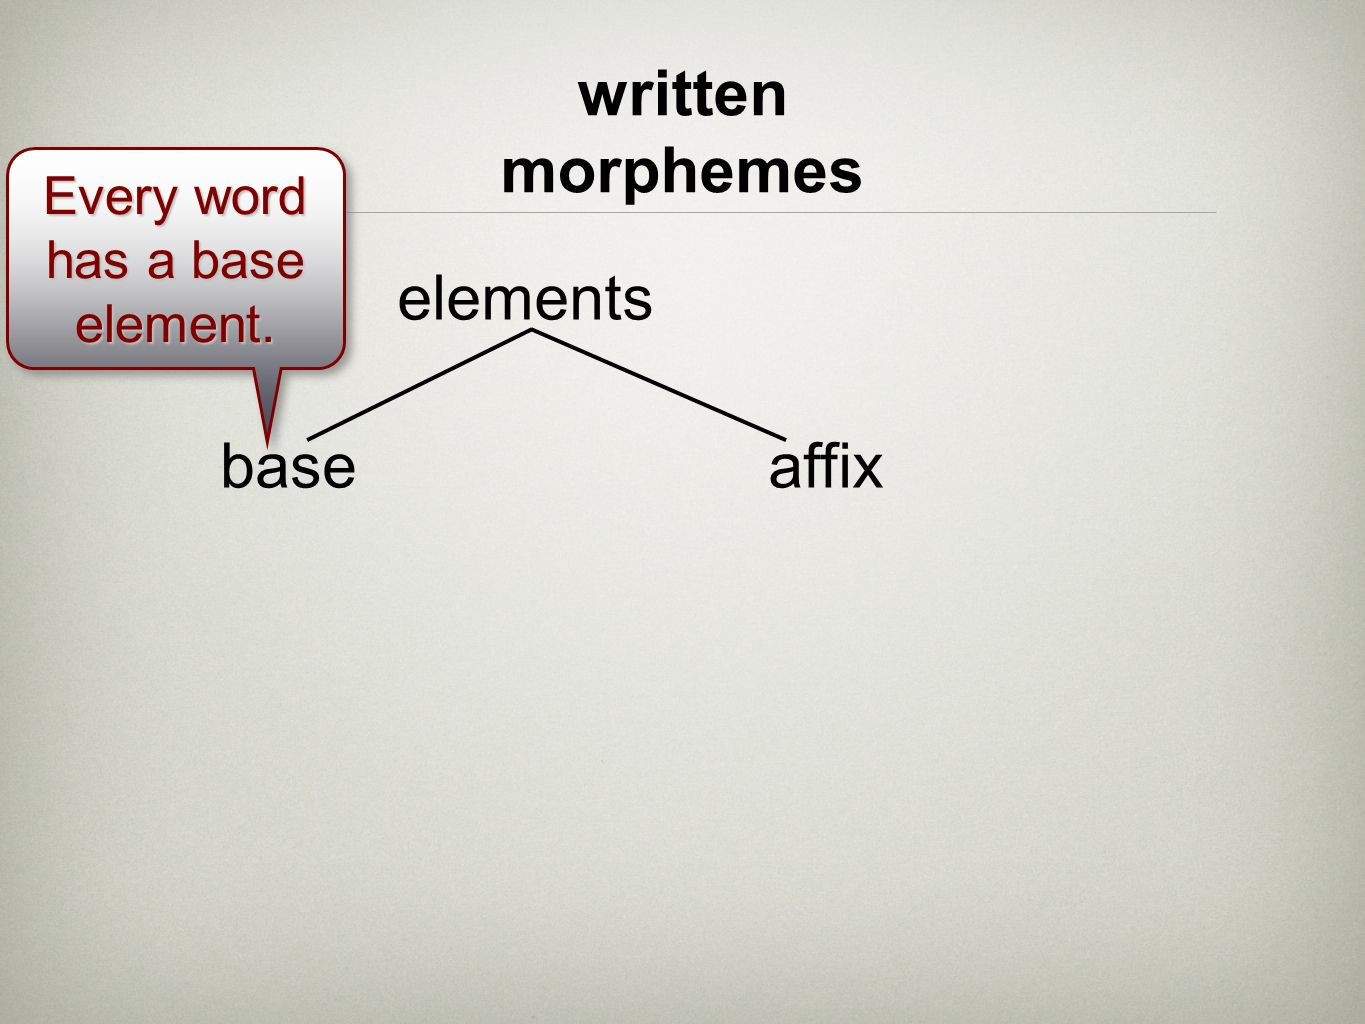 Every word has a base element.